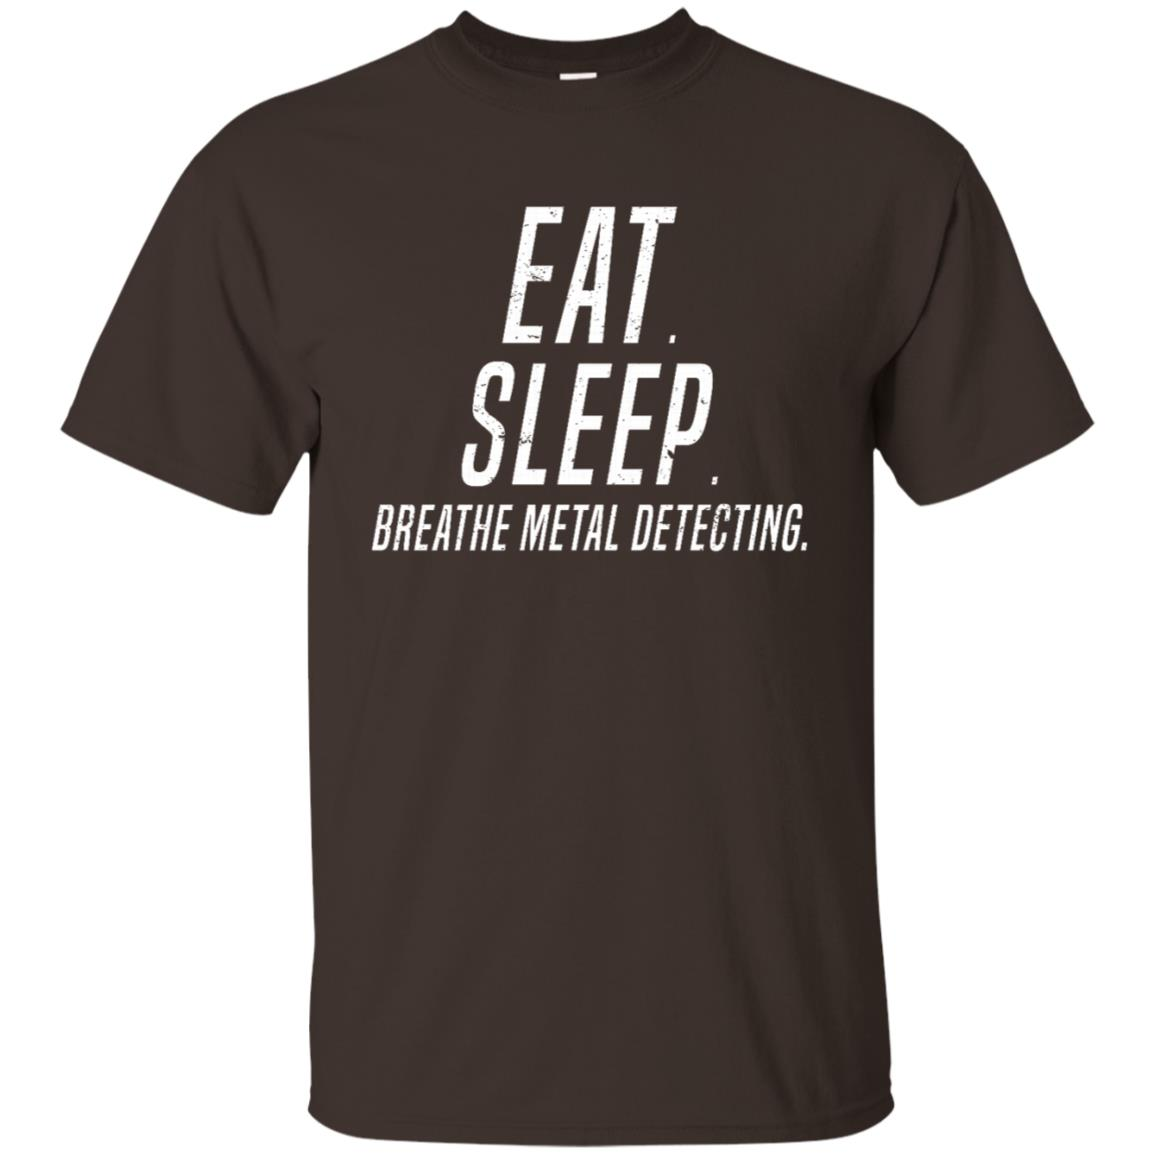 Treasure Hunting Eat. Sleep. Breathe Metal Detecting Unisex Short Sleeve